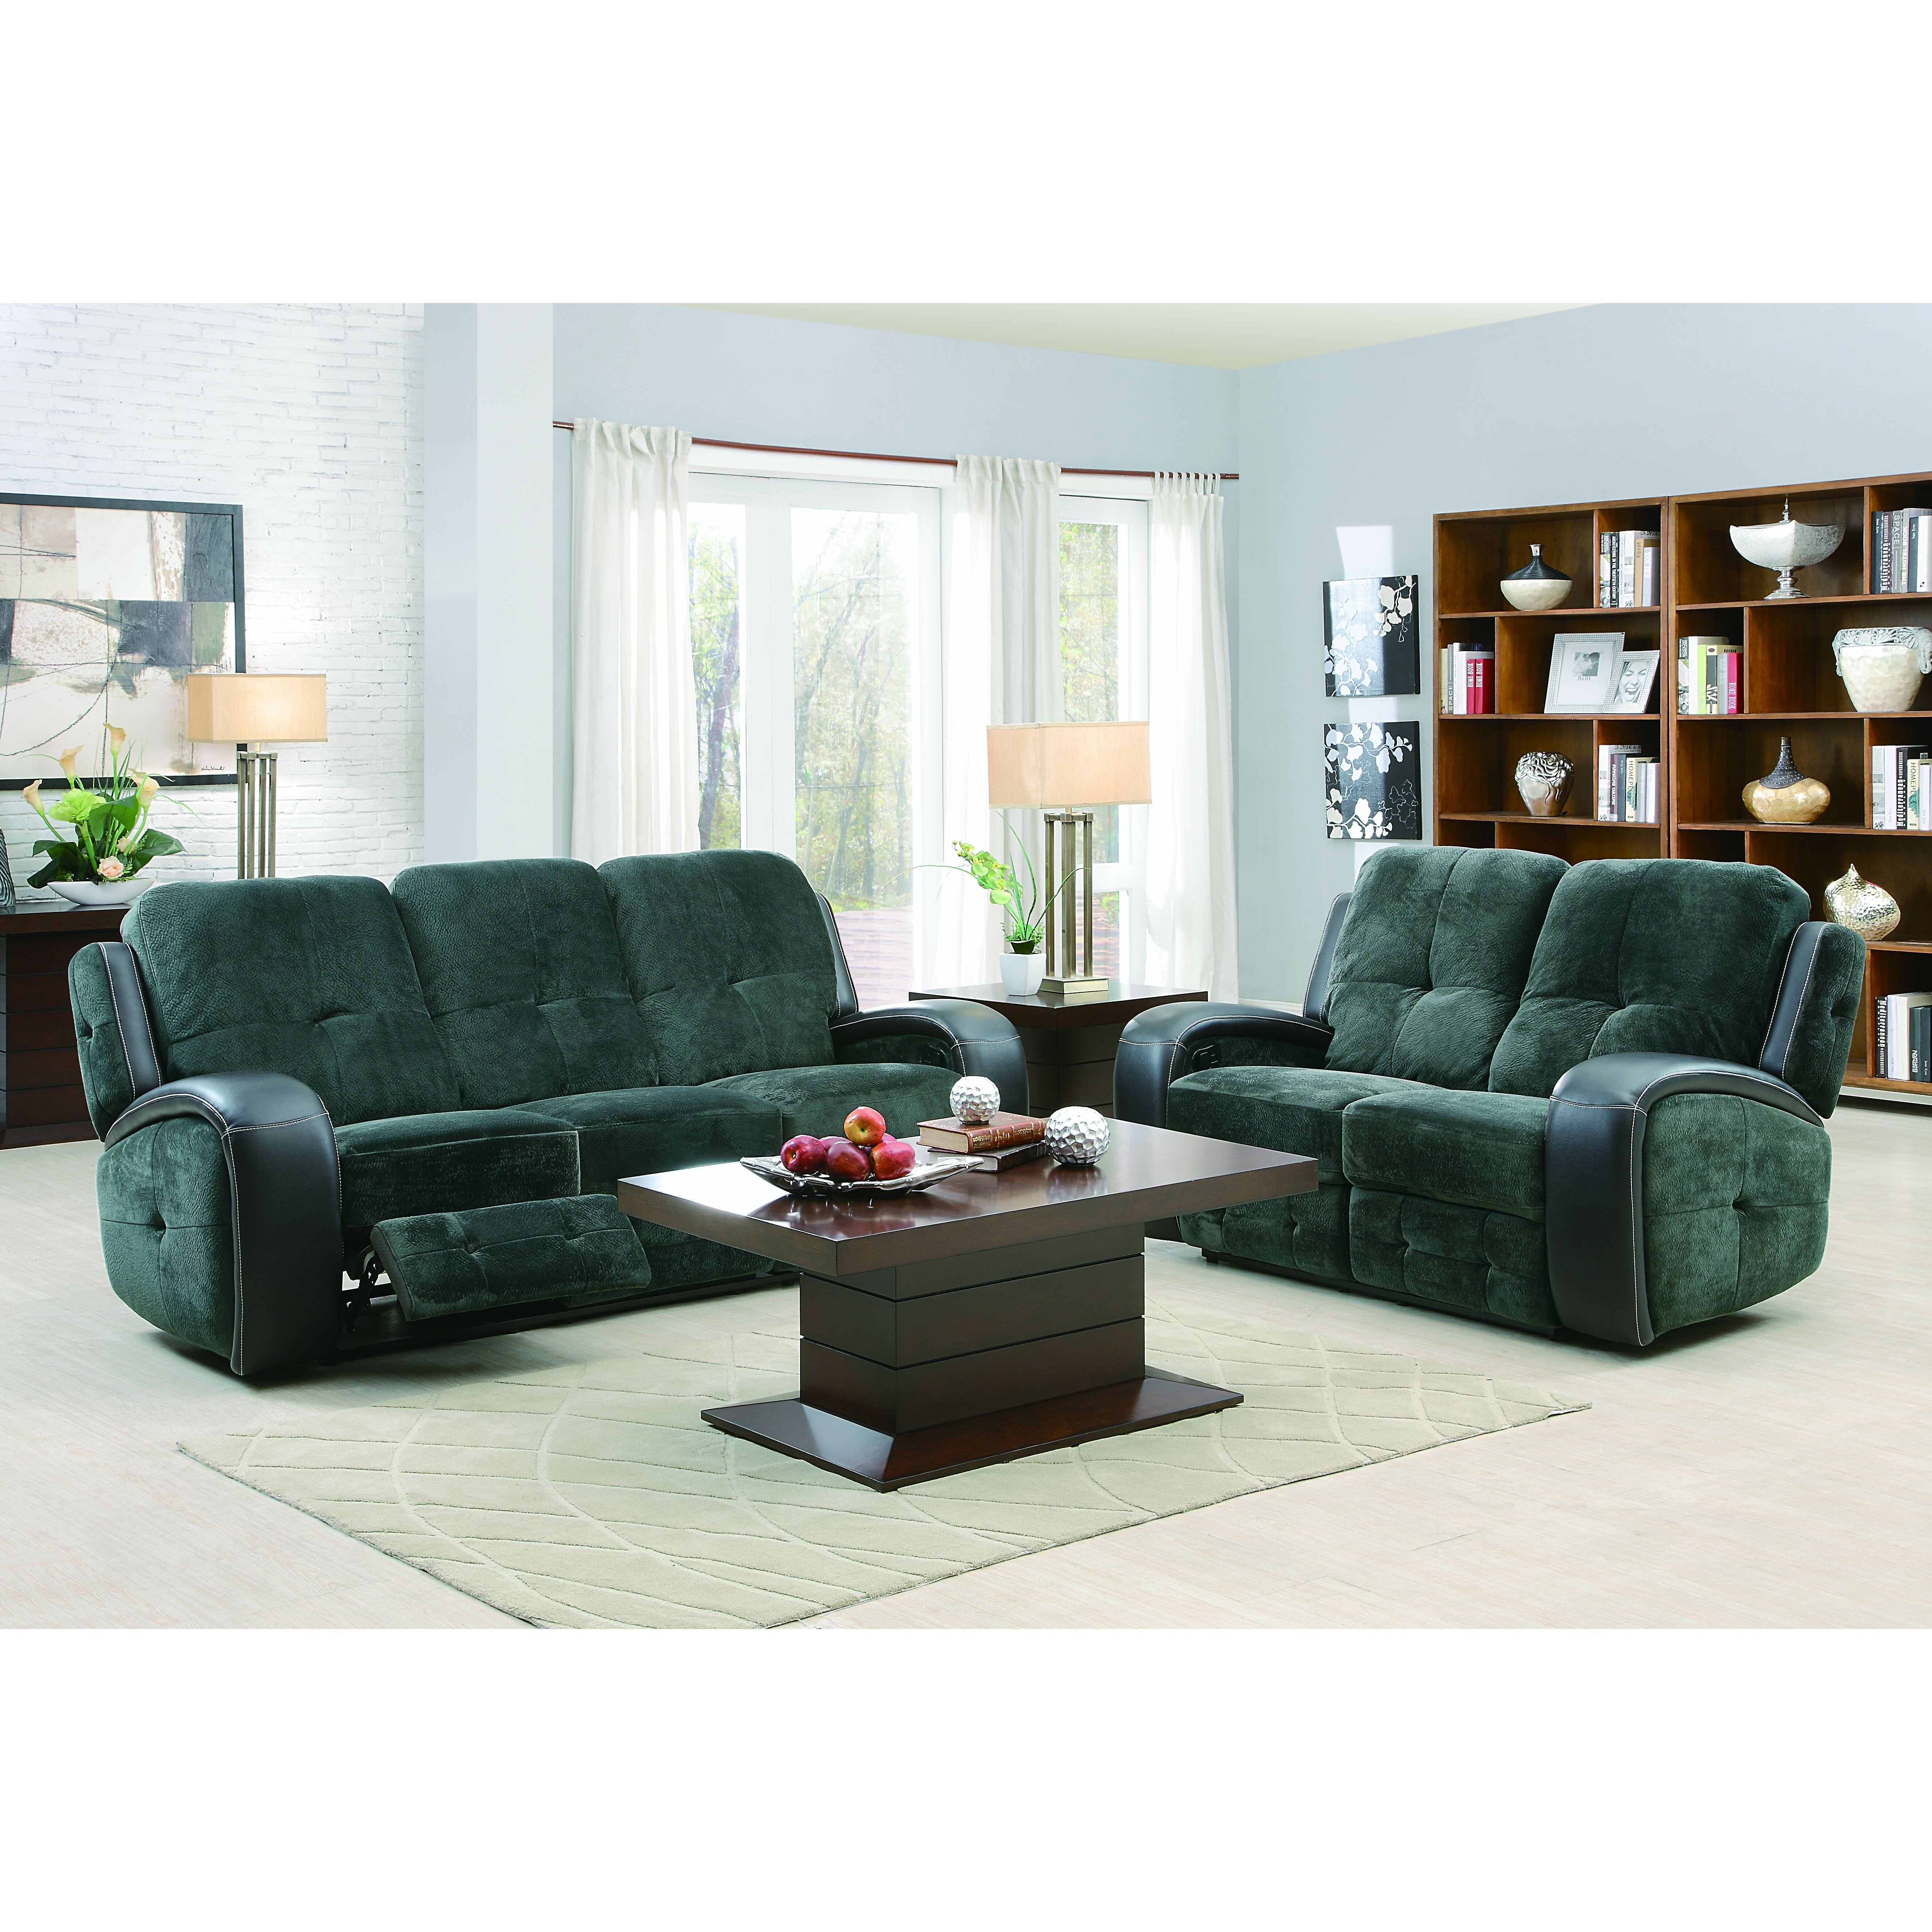 Woodbridge Home Designs Furniture Review Woodhaven Hill Nast Coffee Table Amp Reviews Wayfair